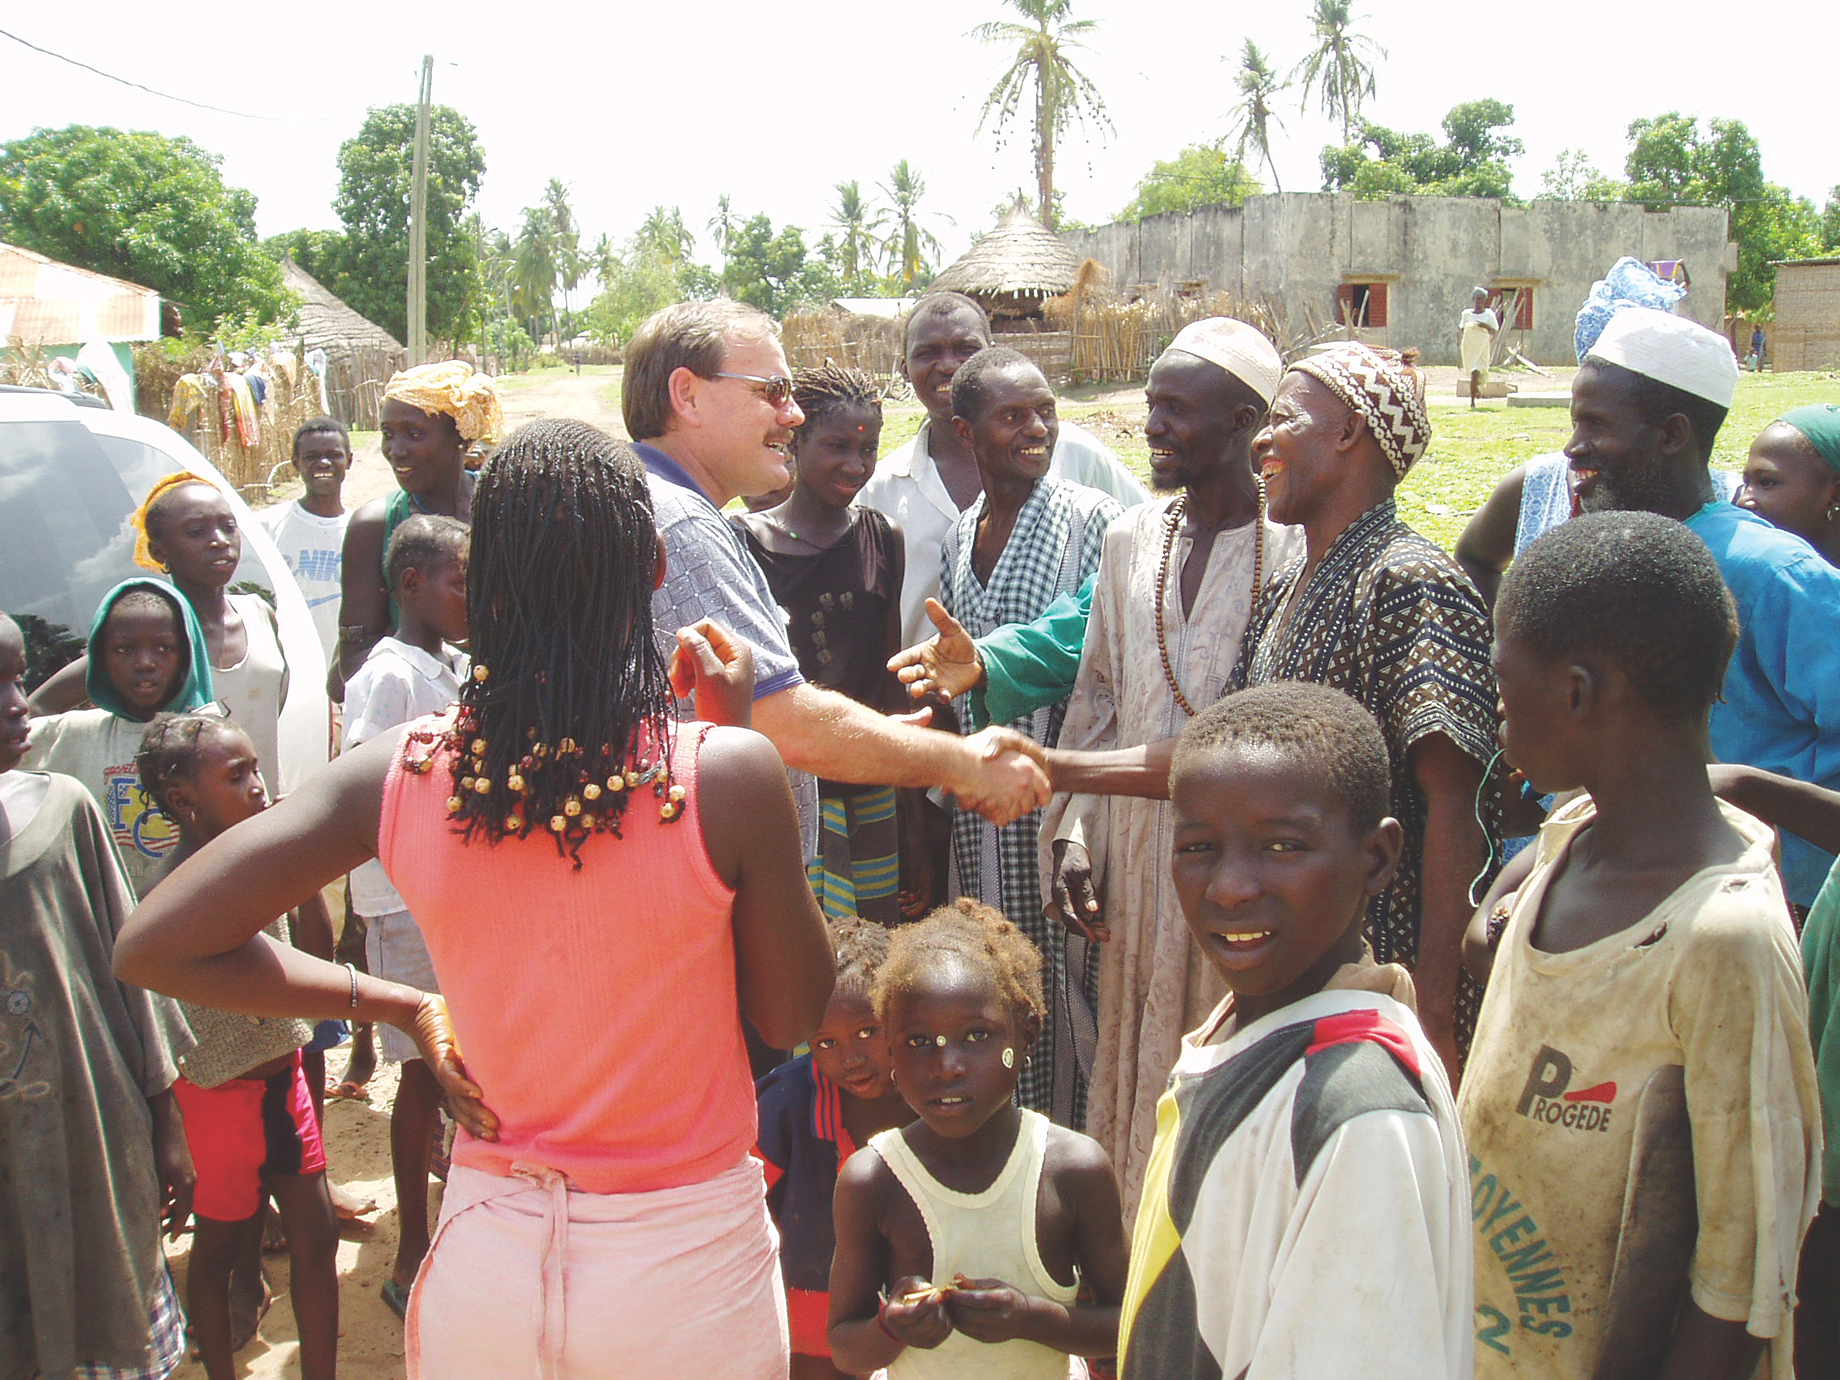 Missionary Dan Rabe shaking hands with Manjack man, with group in village